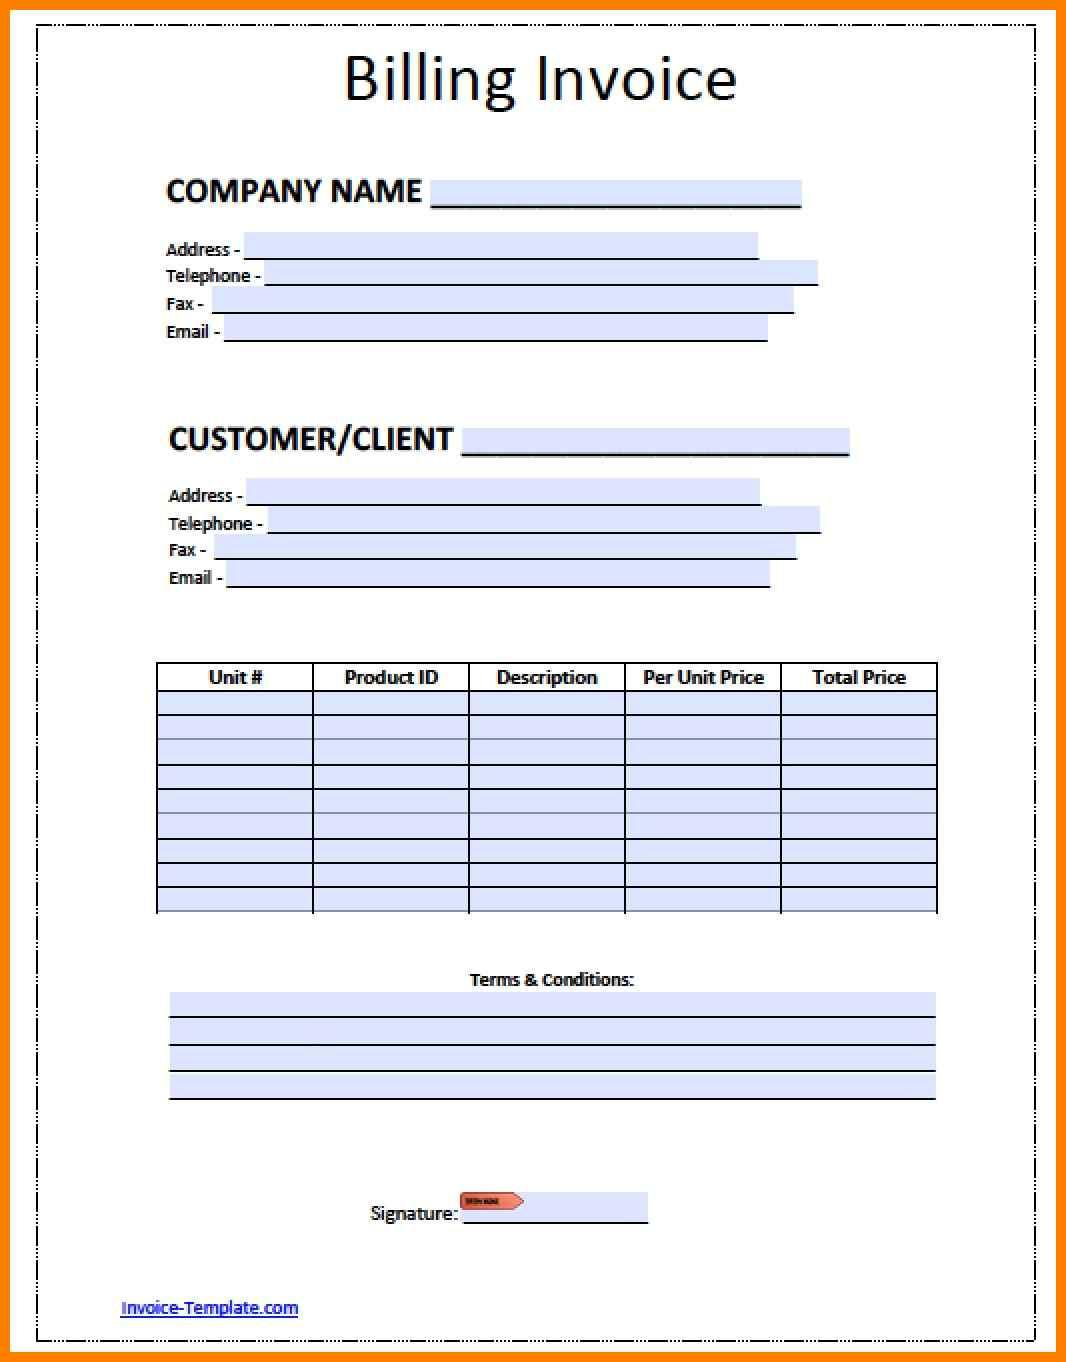 Blank Billing Invoice Template Pdf